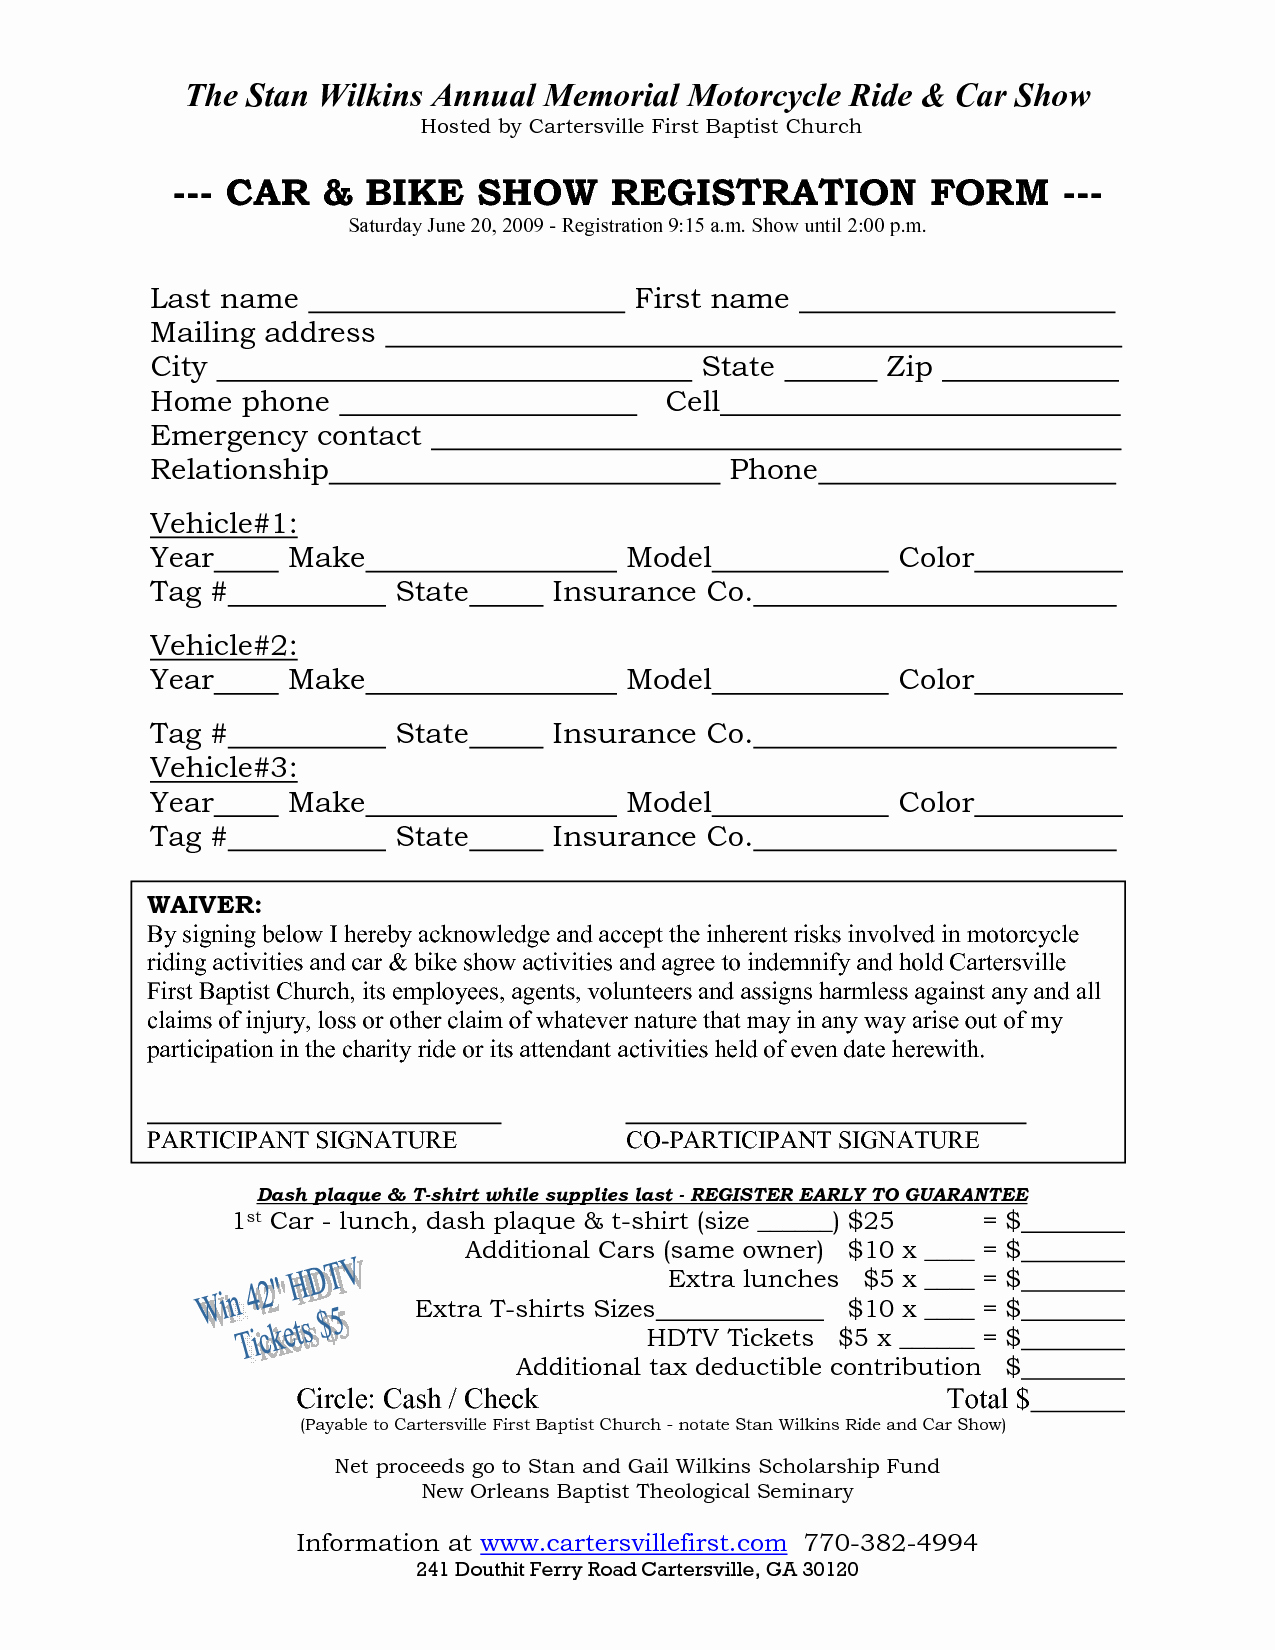 Registration forms Template Word Awesome Car Show Registration form Templates Find Word Templates